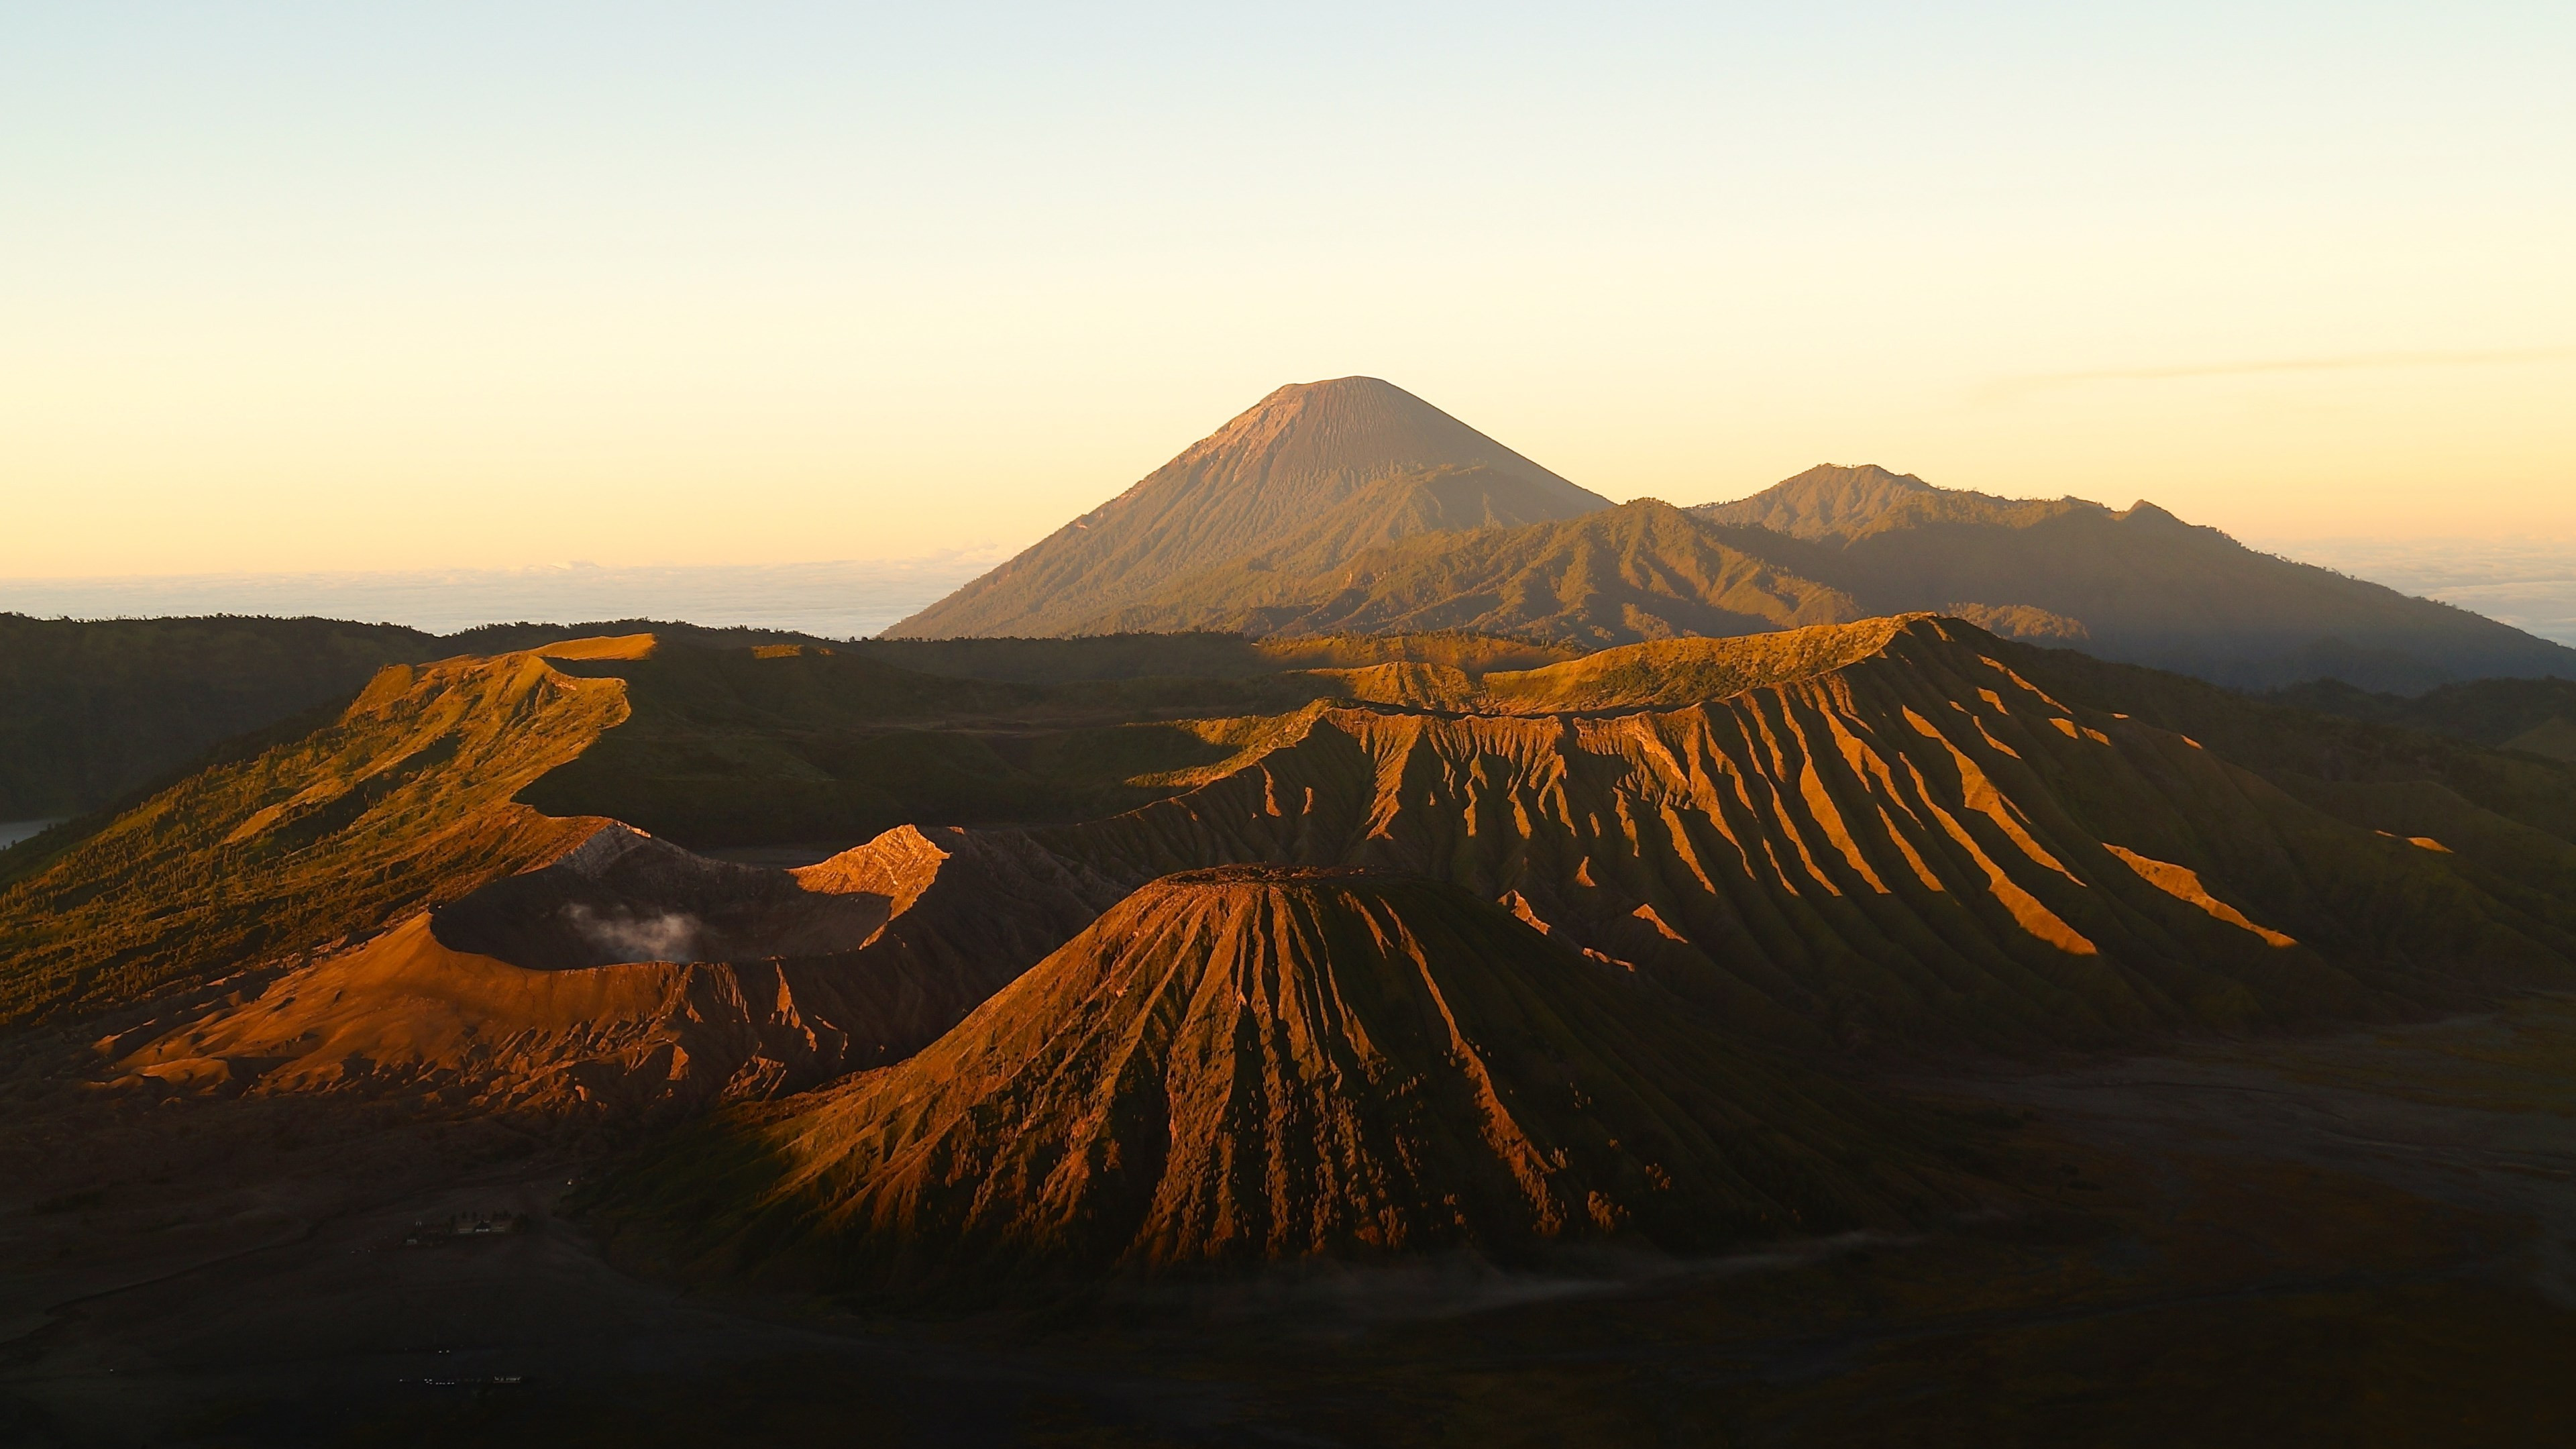 Active Volcanos from Mount Bromo wallpaper 3840x2160